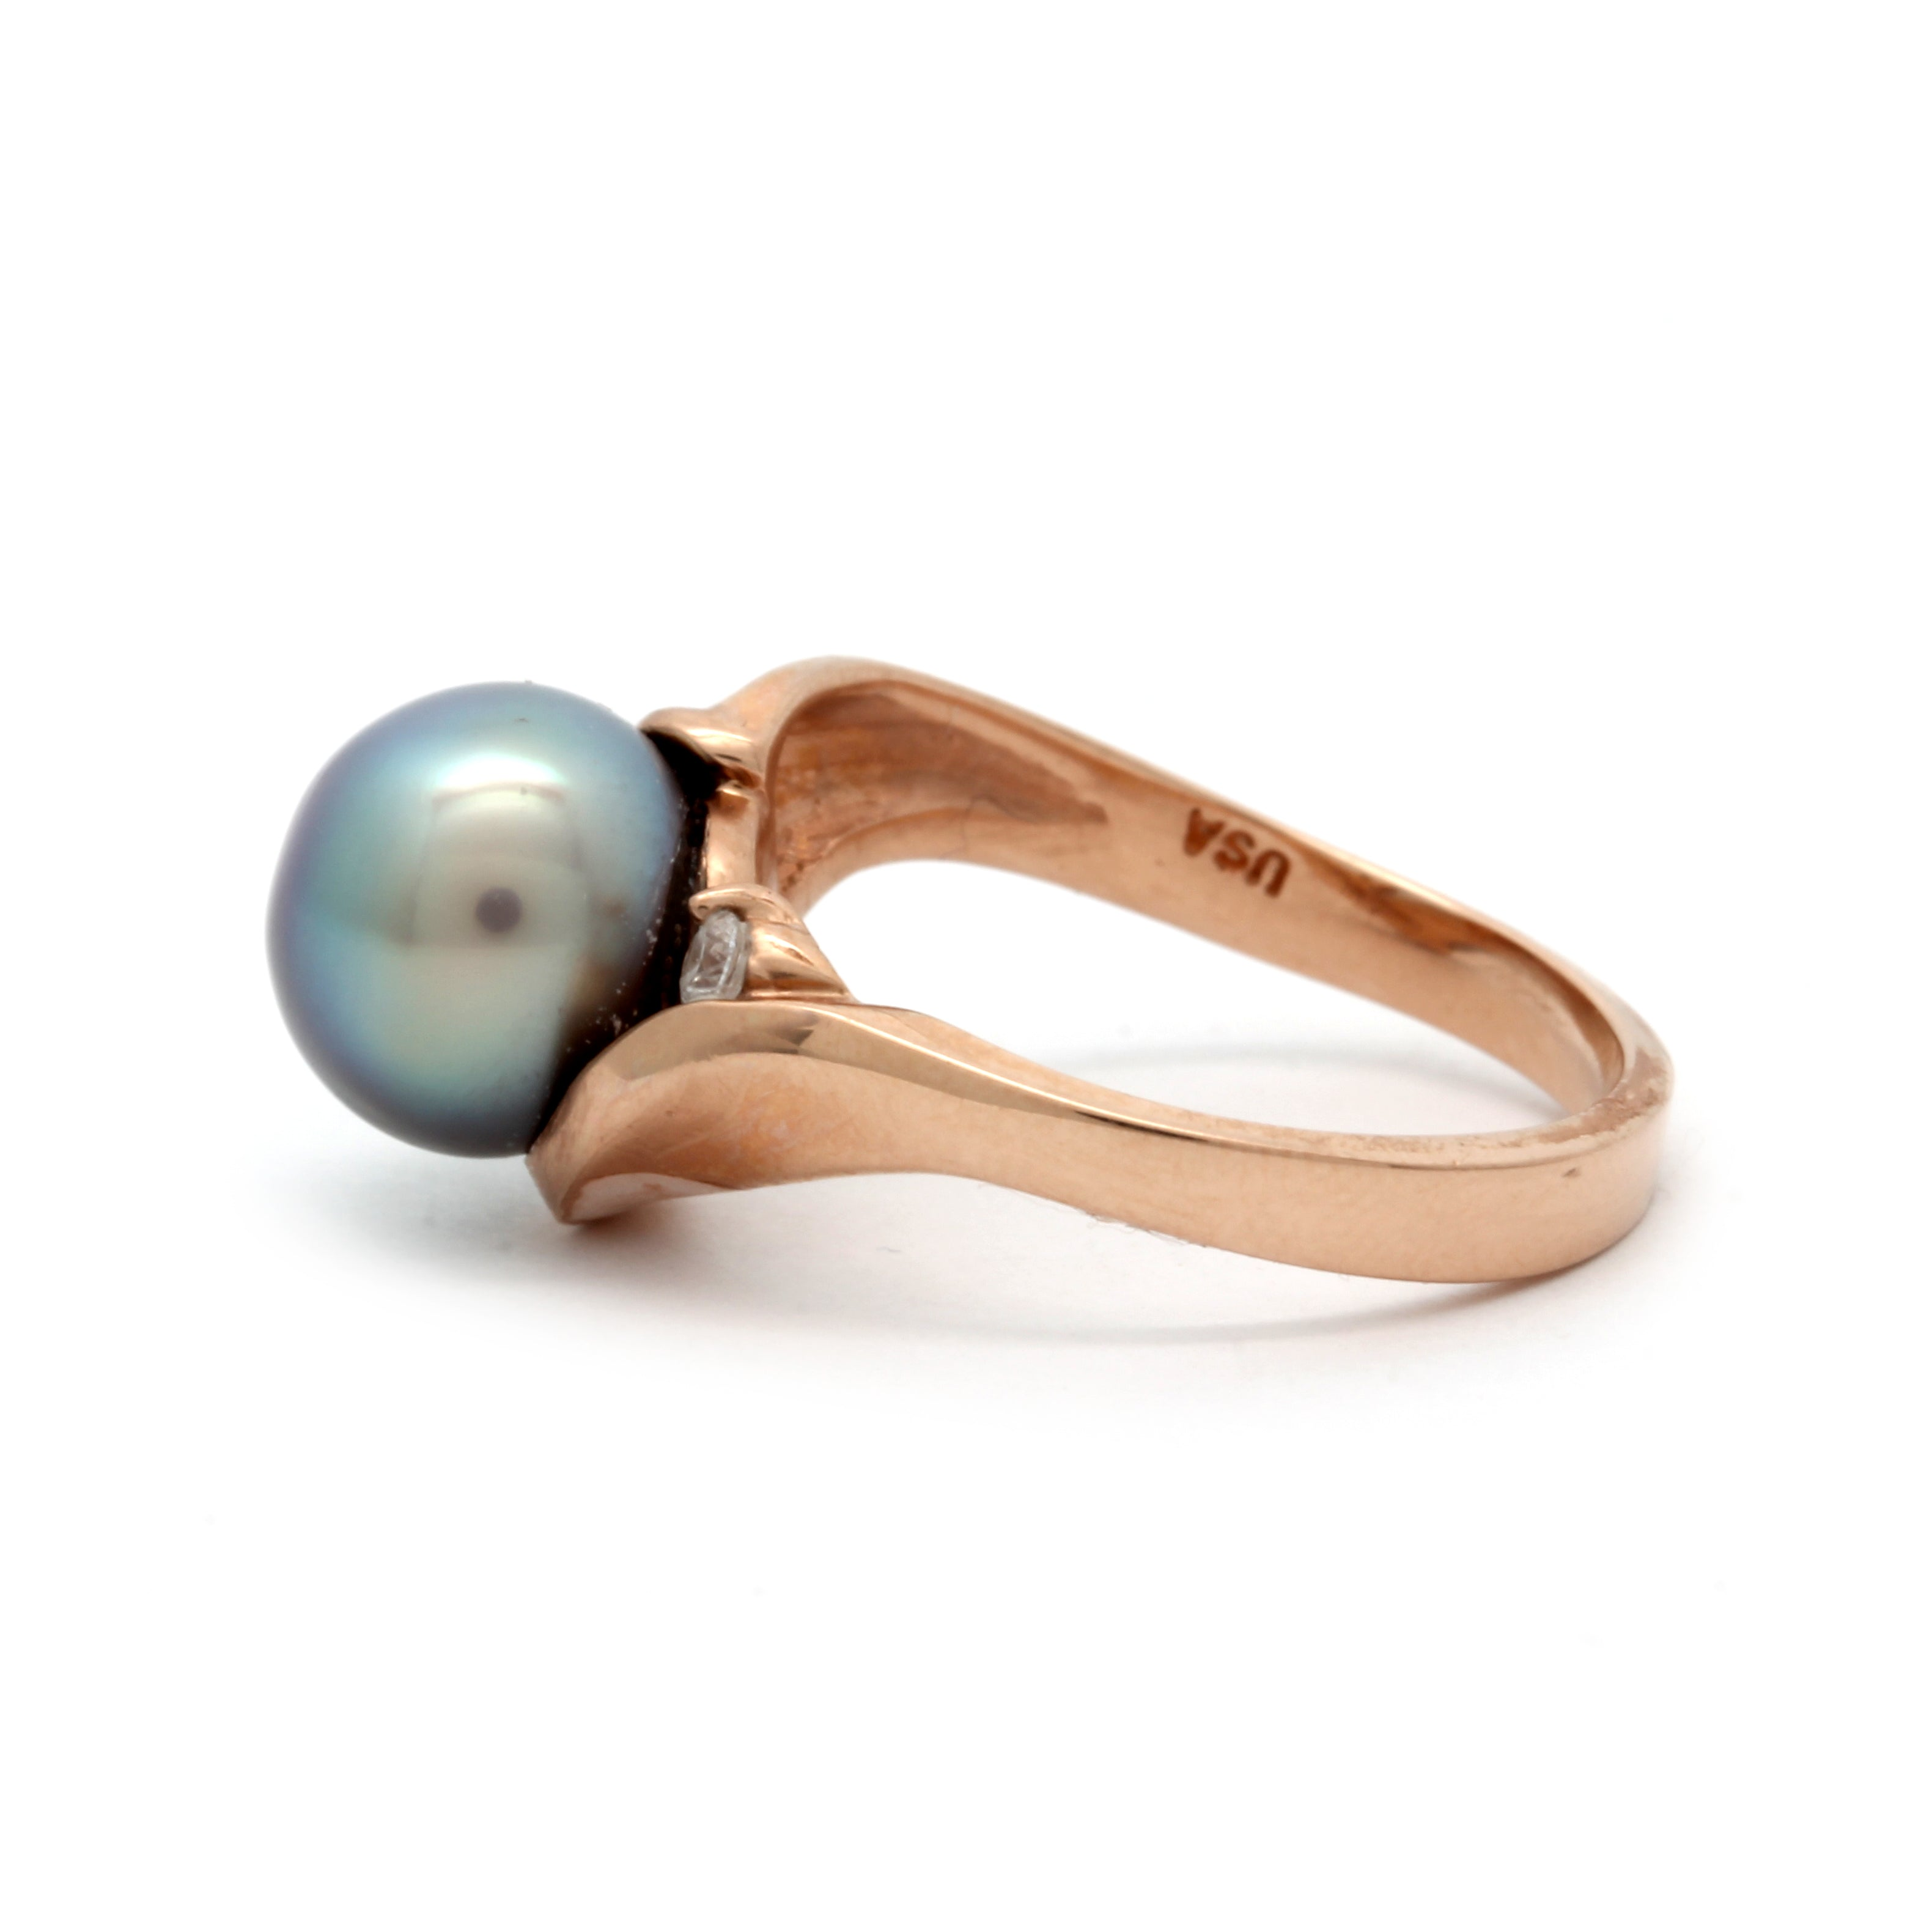 NEW Rose Gold Ring with Gem++SN Cortez Pearl and Diamond by Kathe Mai